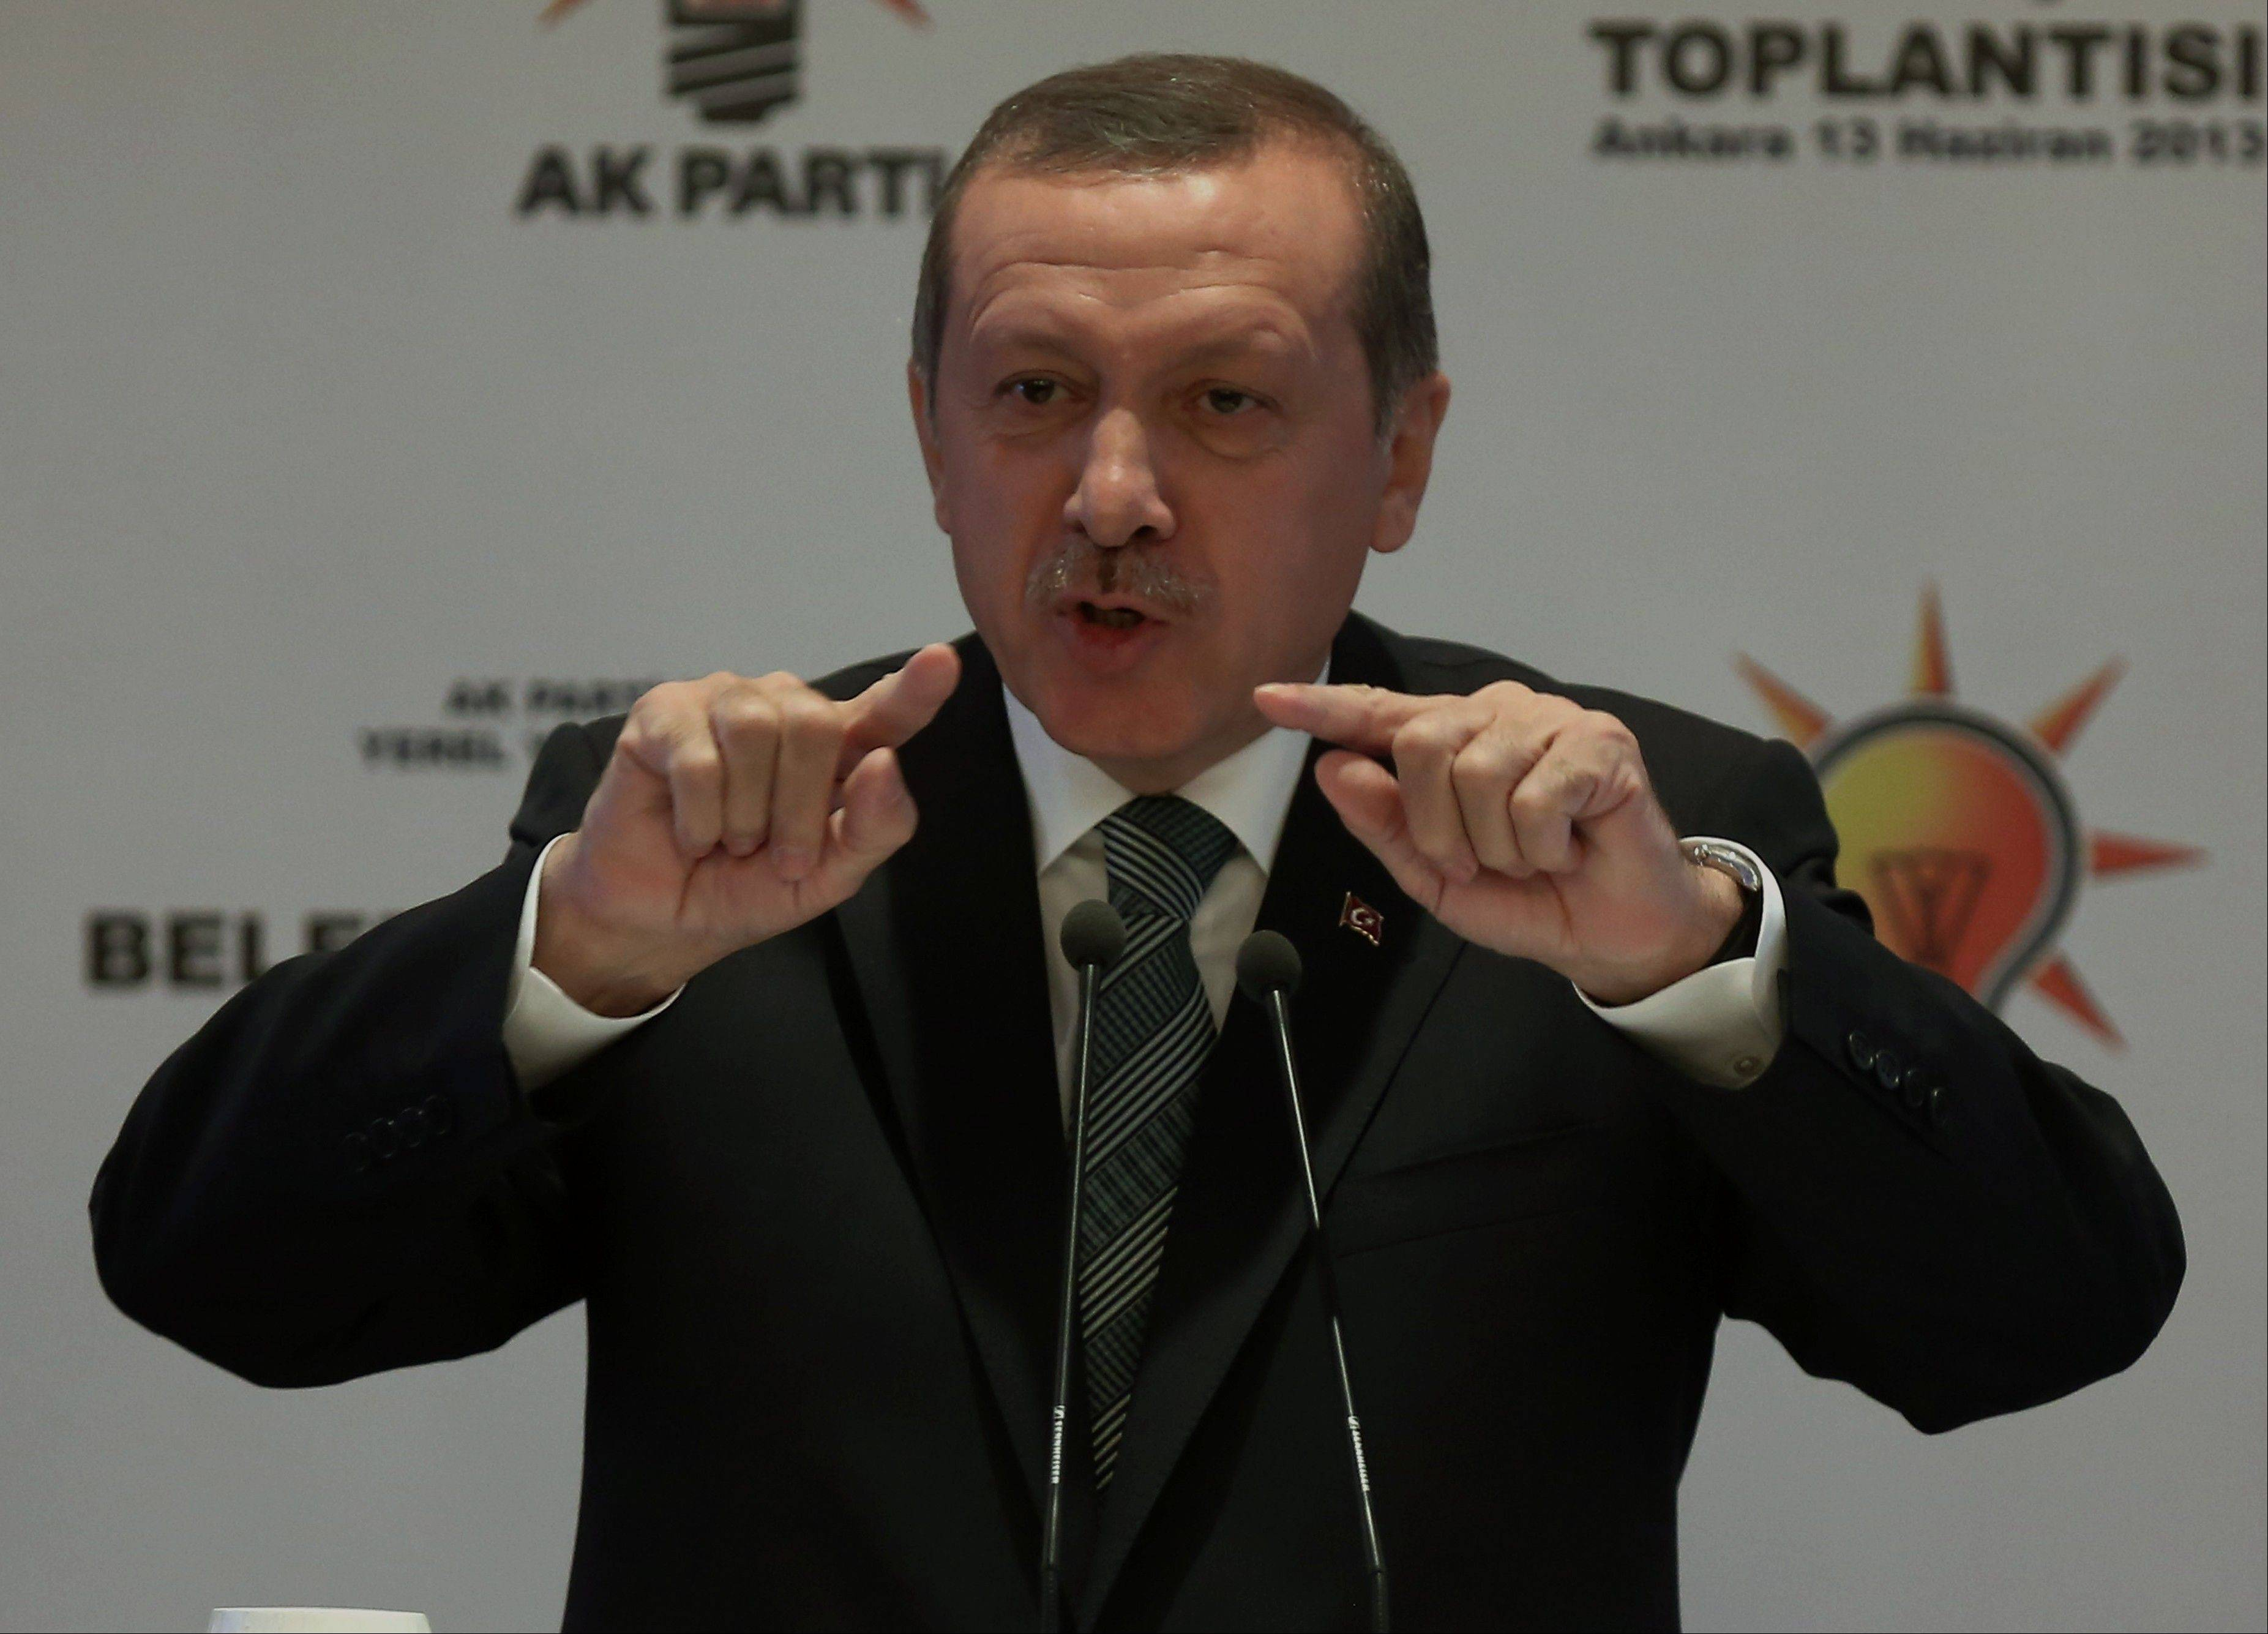 Associated Press Turkish Prime Minister Recep Tayyip Erdogan addresses the mayors from his ruling Justice and Development Party in Ankara, Turkey, Thursday, June 13, 2013.